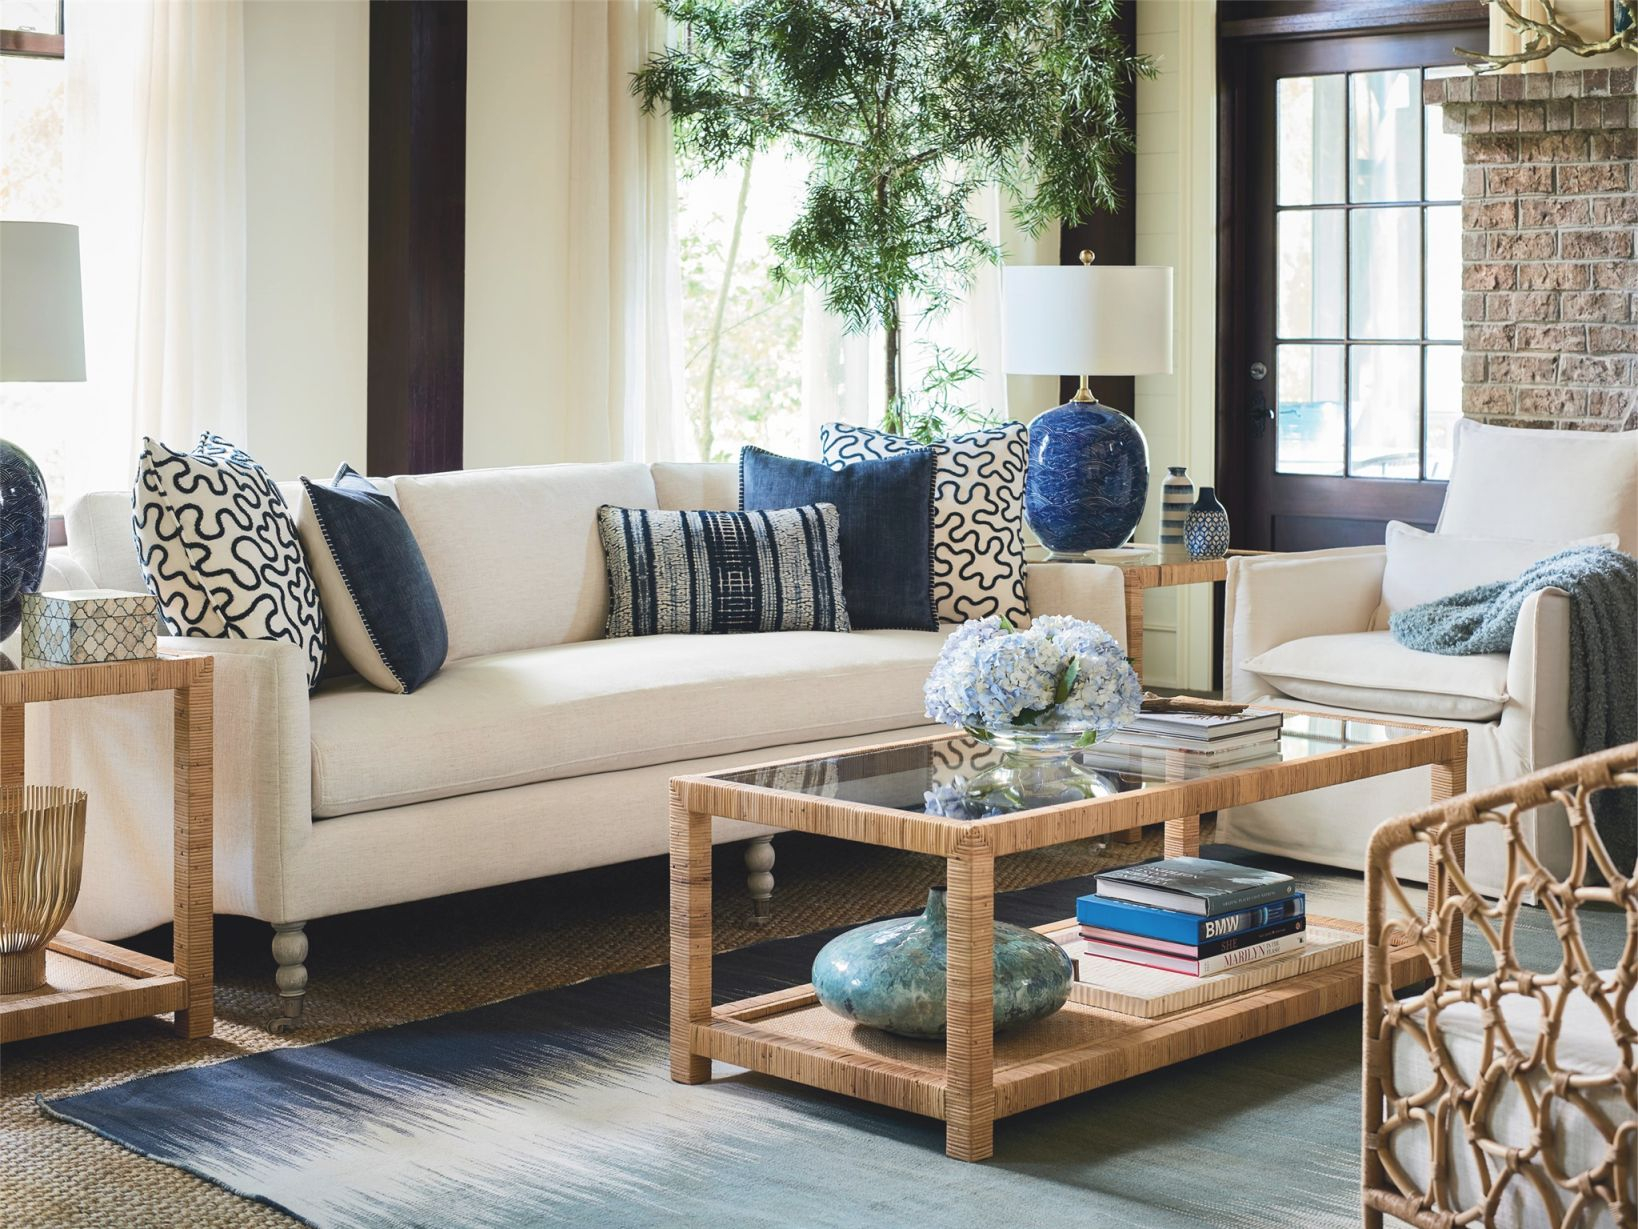 Escape-Coastal Living Home Collection Kiawah Sofa for Inspirational Coastal Living Room Furniture